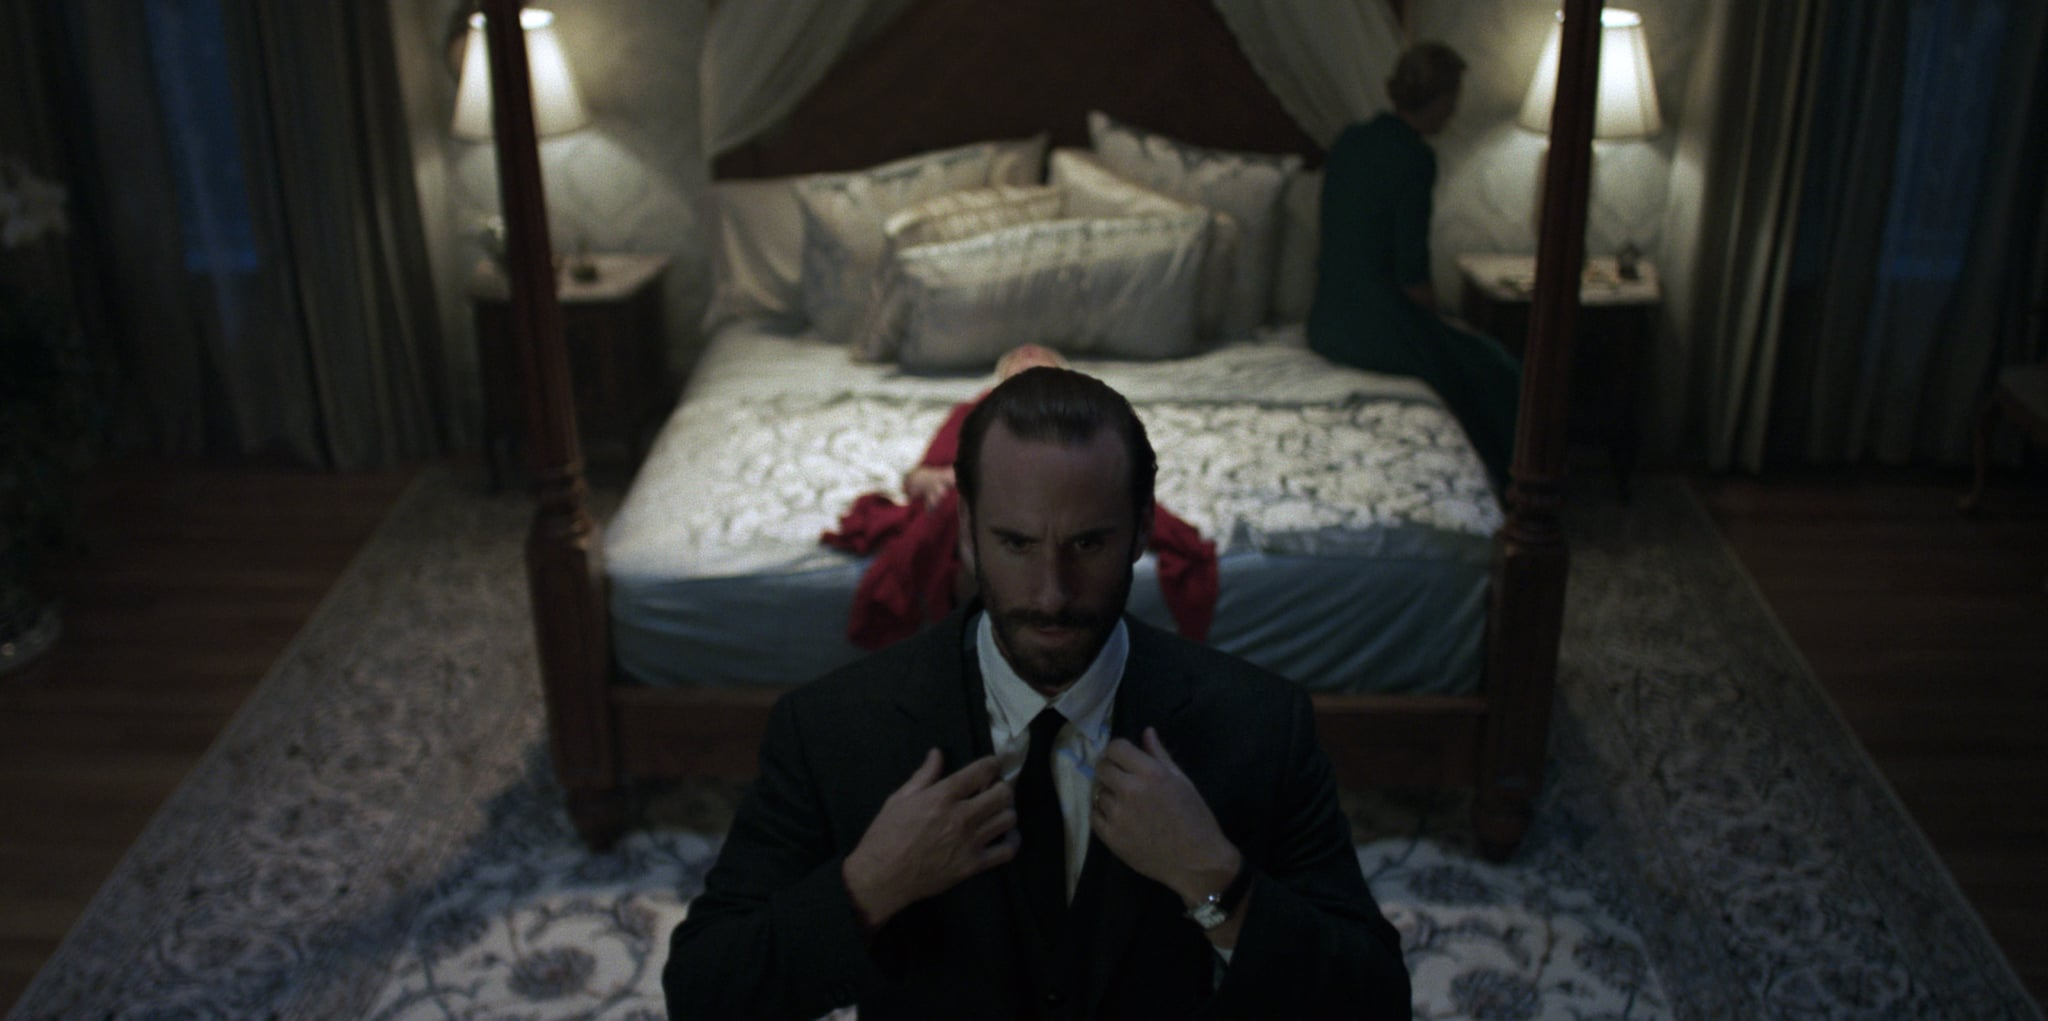 THE HANDMAID'S TALE, Joseph Fiennes, (Season 1, premieres April 26, 2017). photo: Take Five / Hulu / Courtesy: Everett Collection